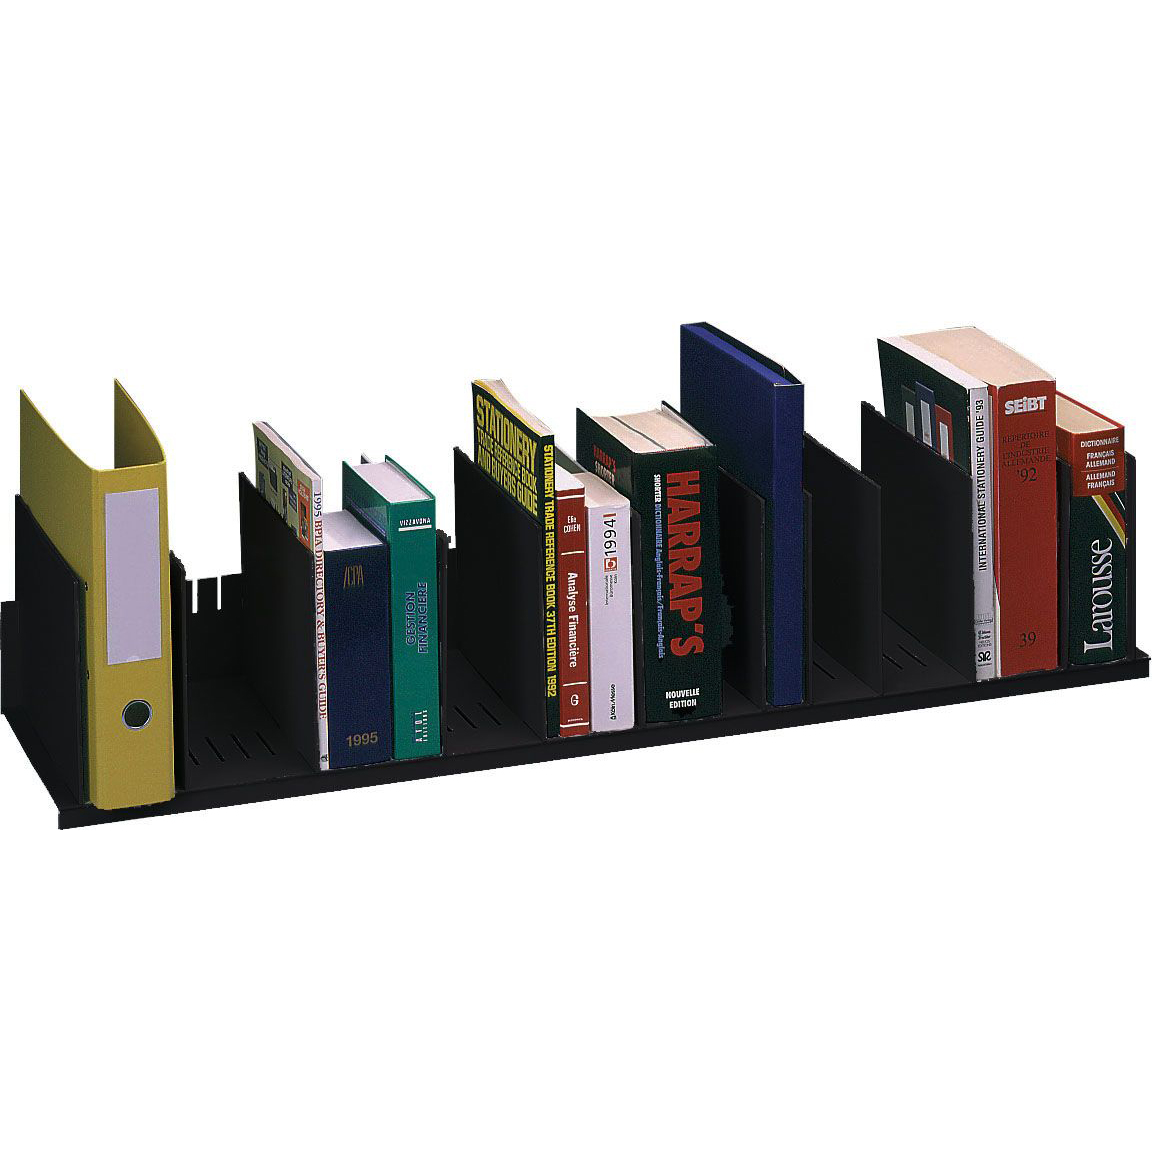 "Paperflow Individualized Vertical Organizer, 44"" W, Black (2034.01)"